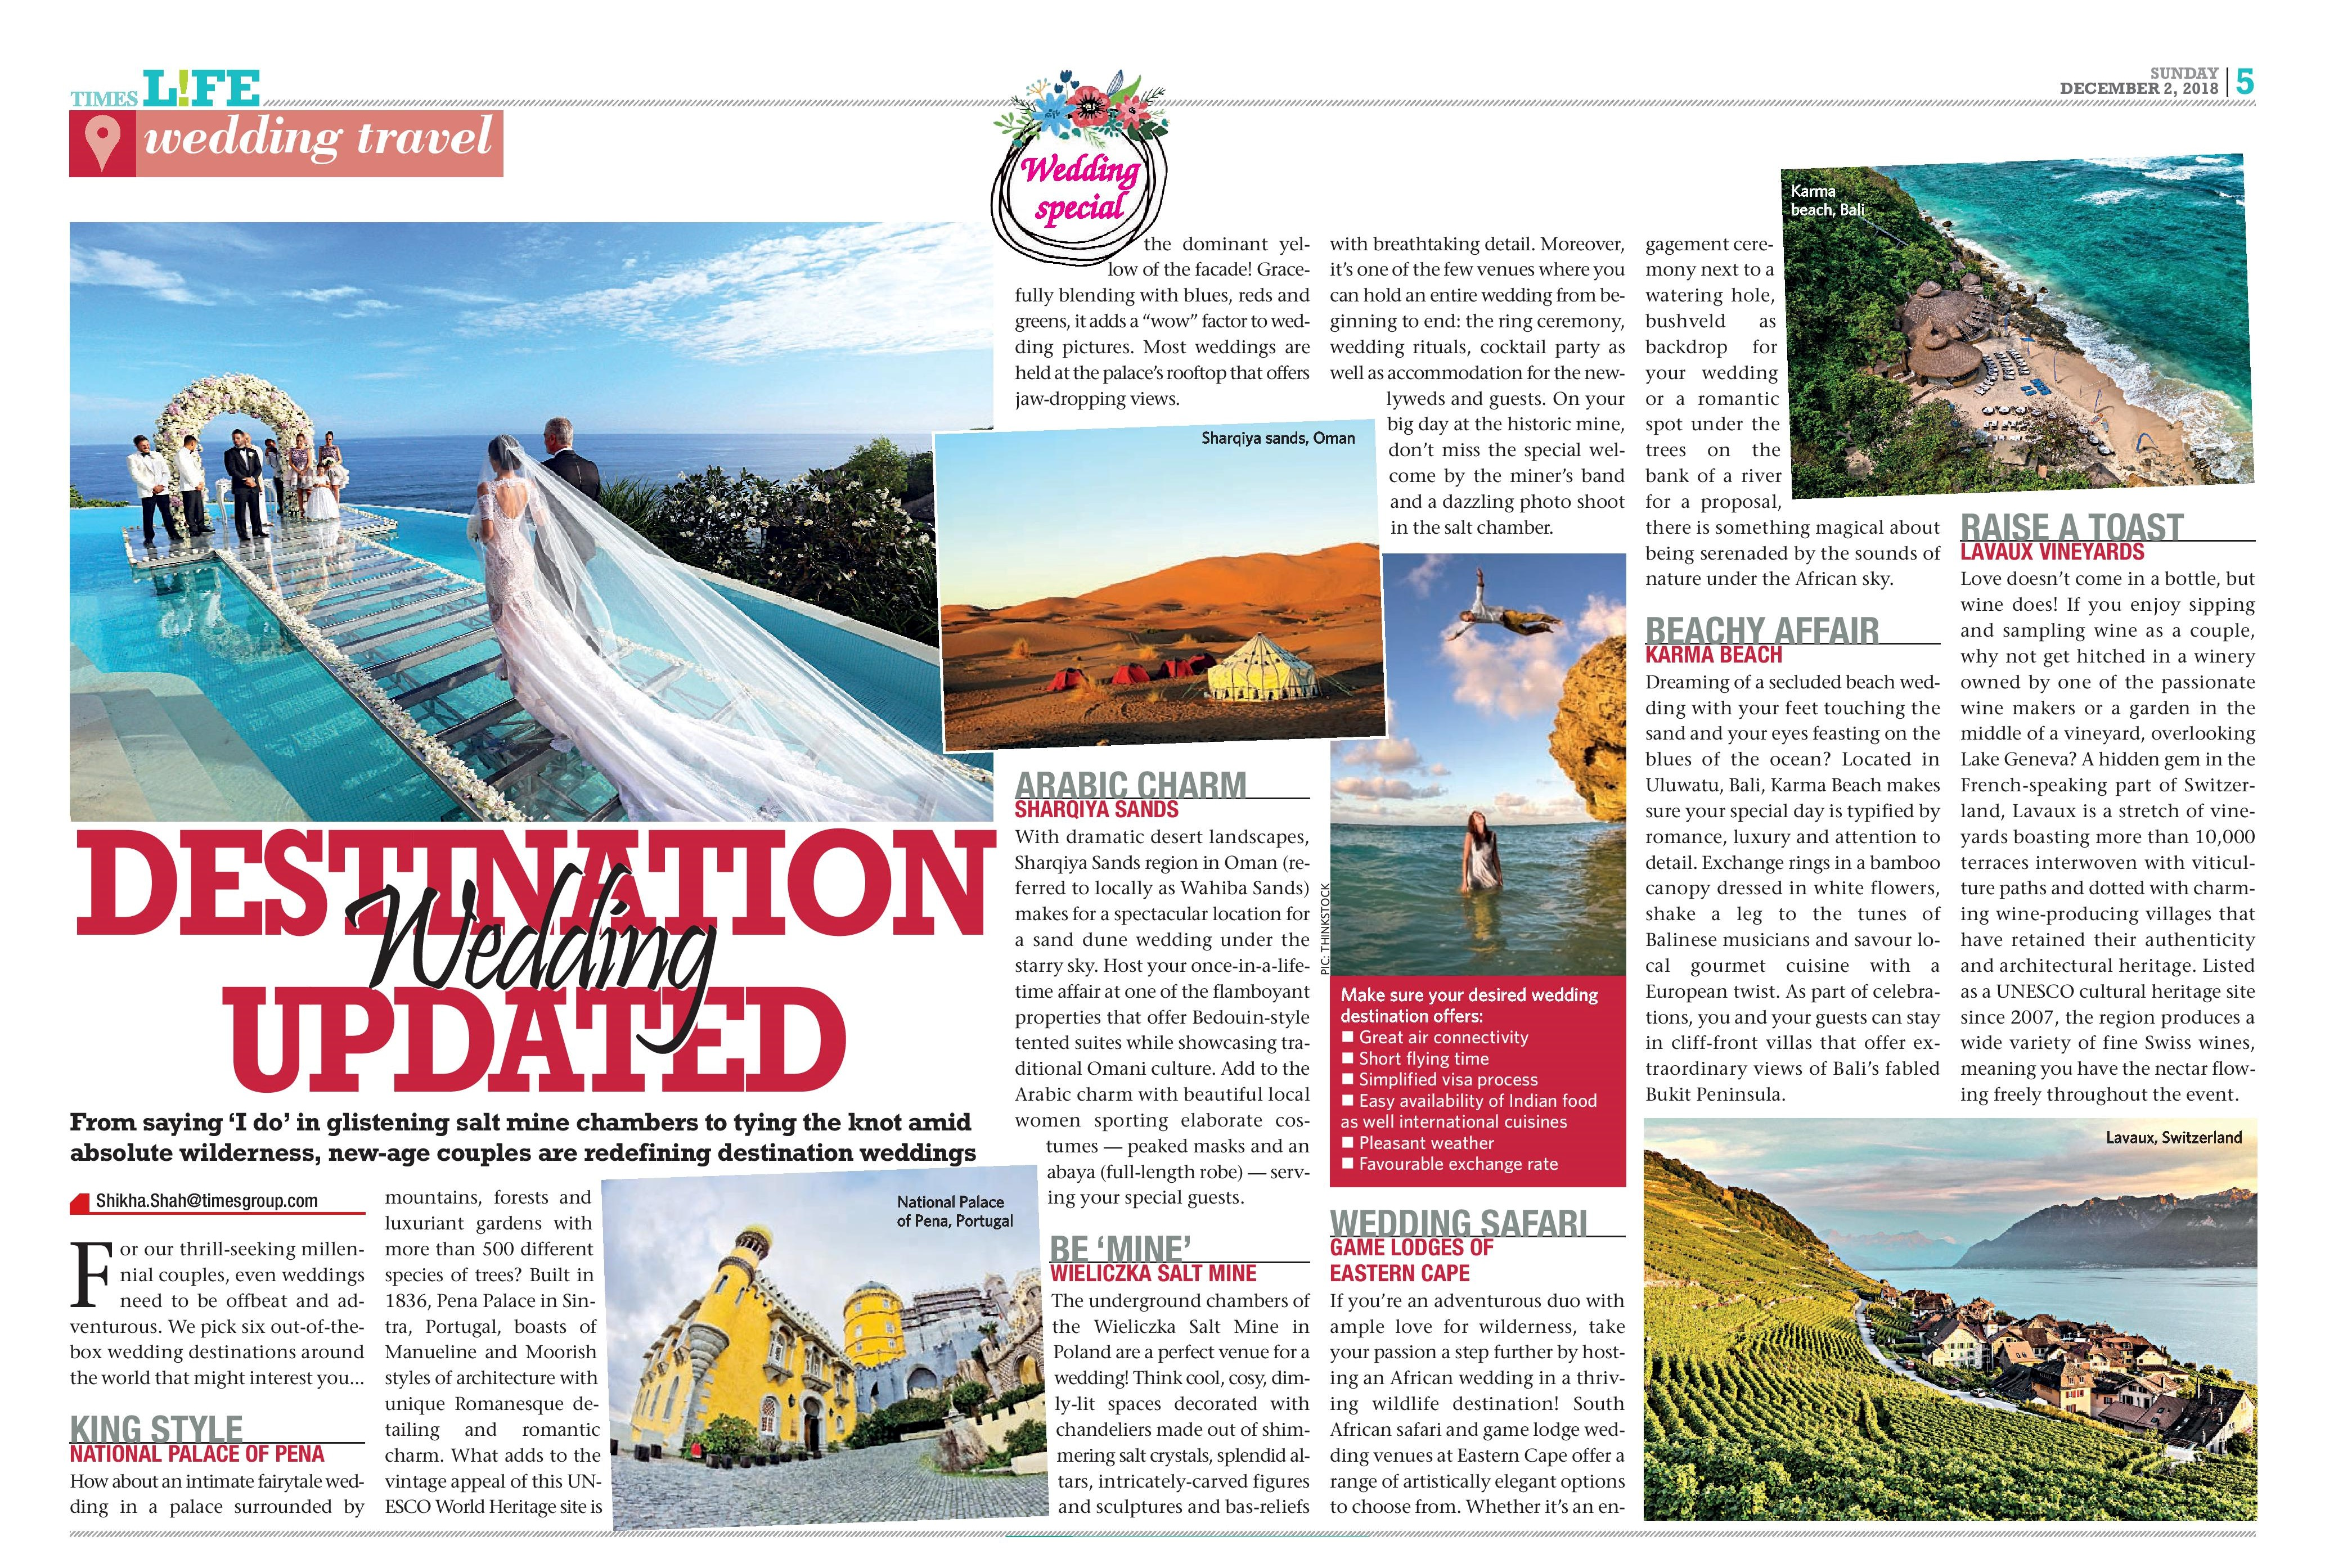 DESTINATION WEDDING TRAVEL FOR TIMES LIFE - page5, 2018-page-001 (2)